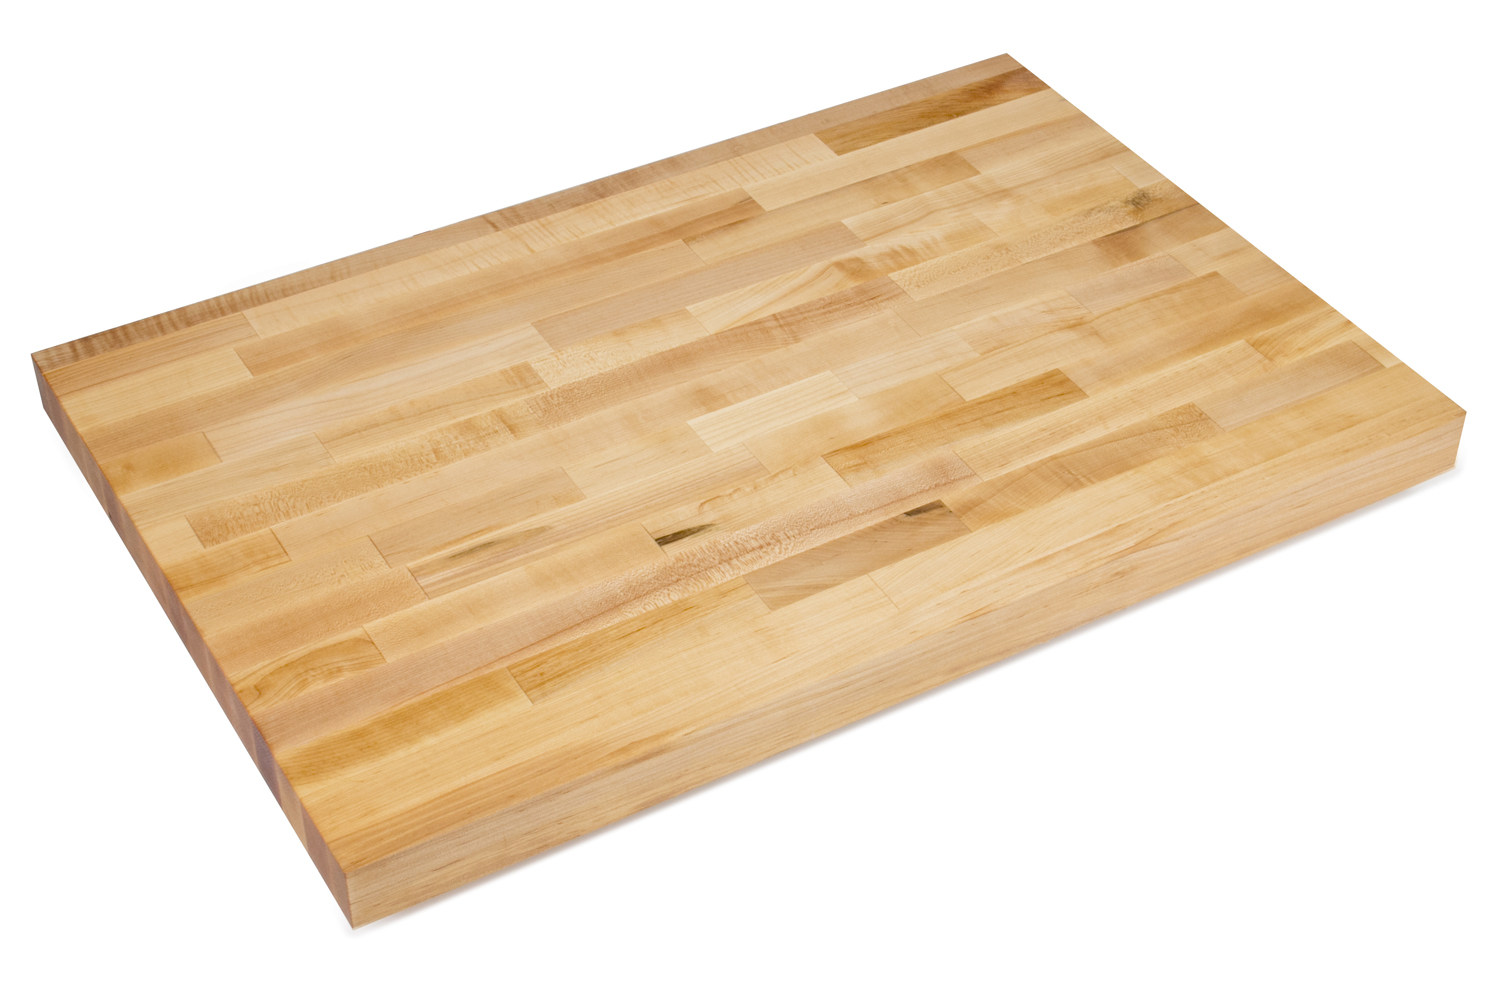 2-1/4 inch thick commercial maple wooden counters John Boos 30 inches wide